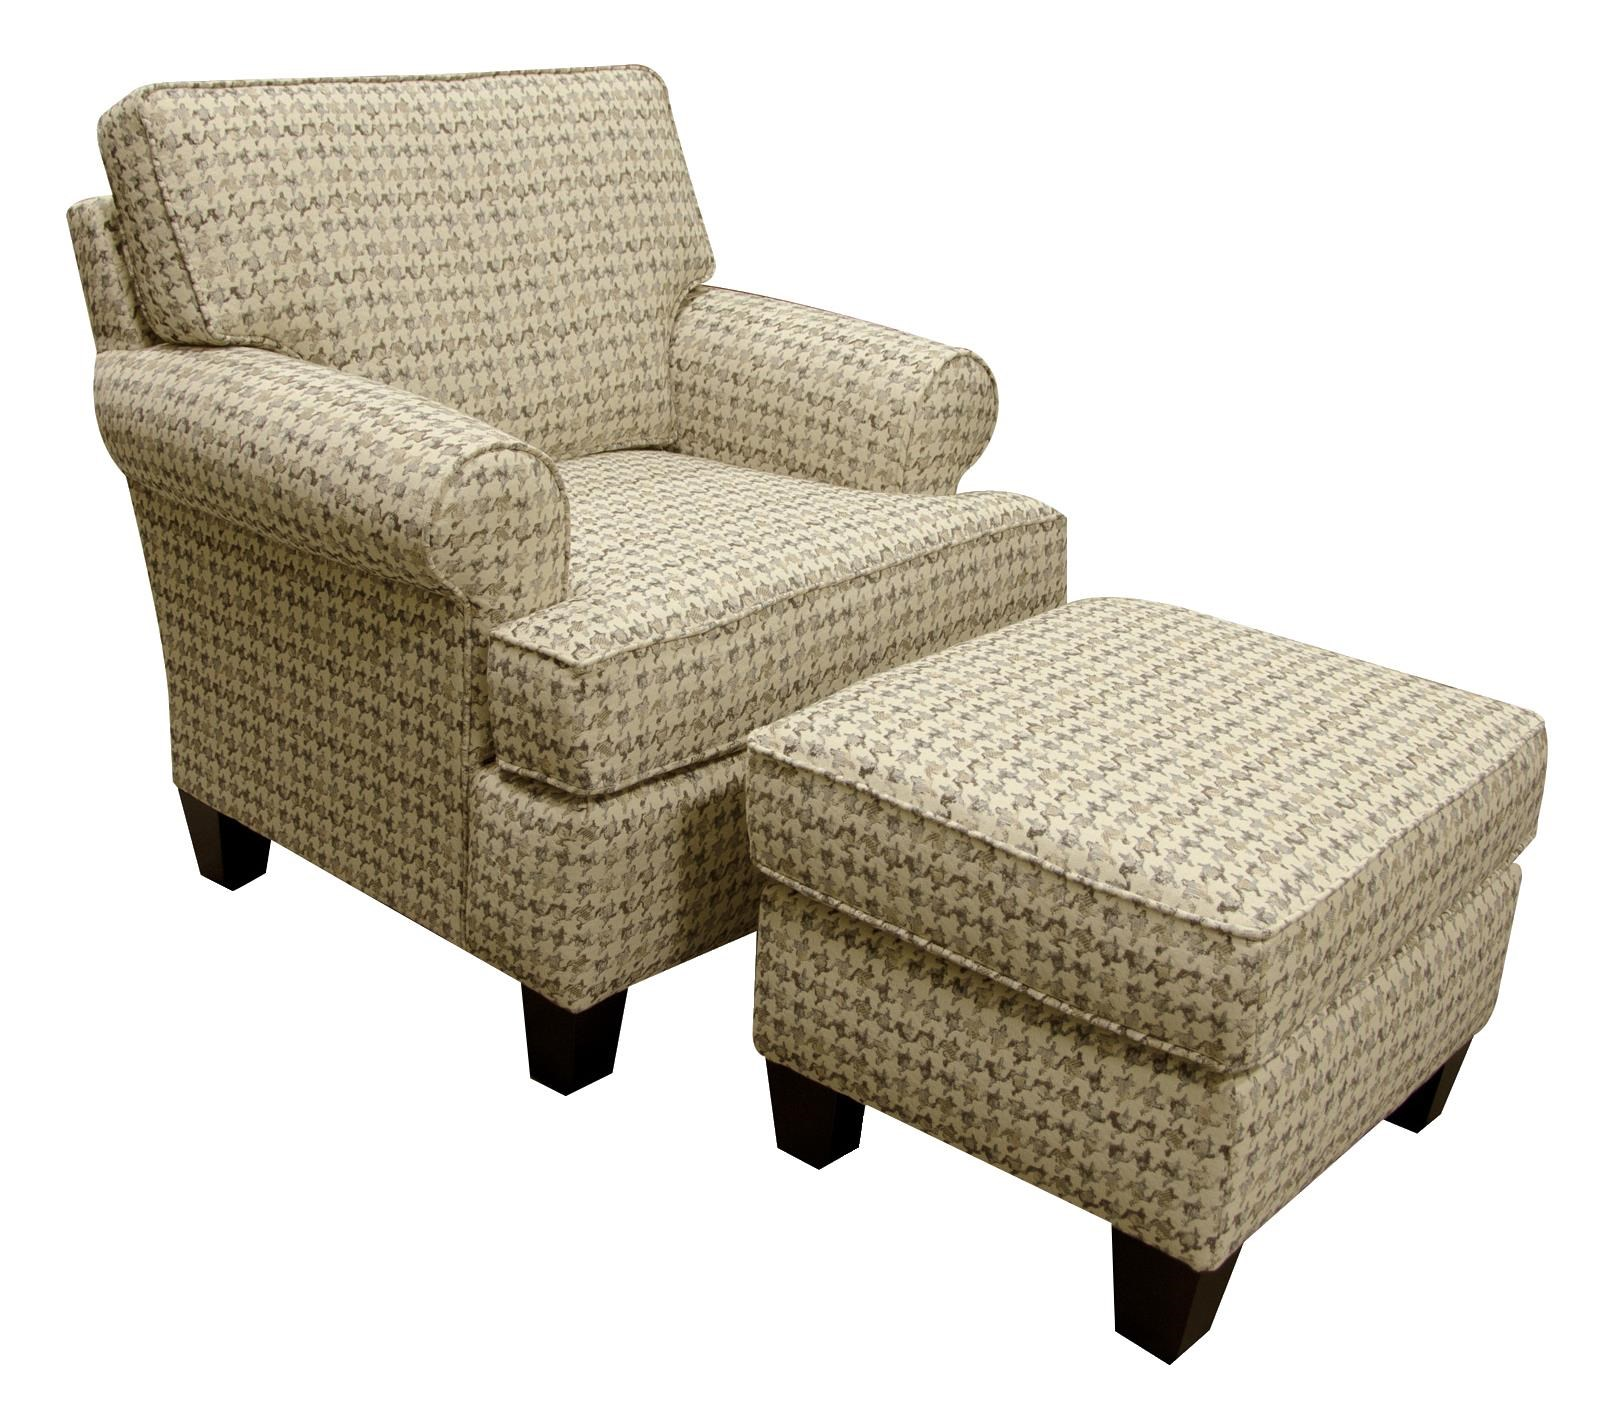 England Weaver Chair And Ottoman Set With Casual Style